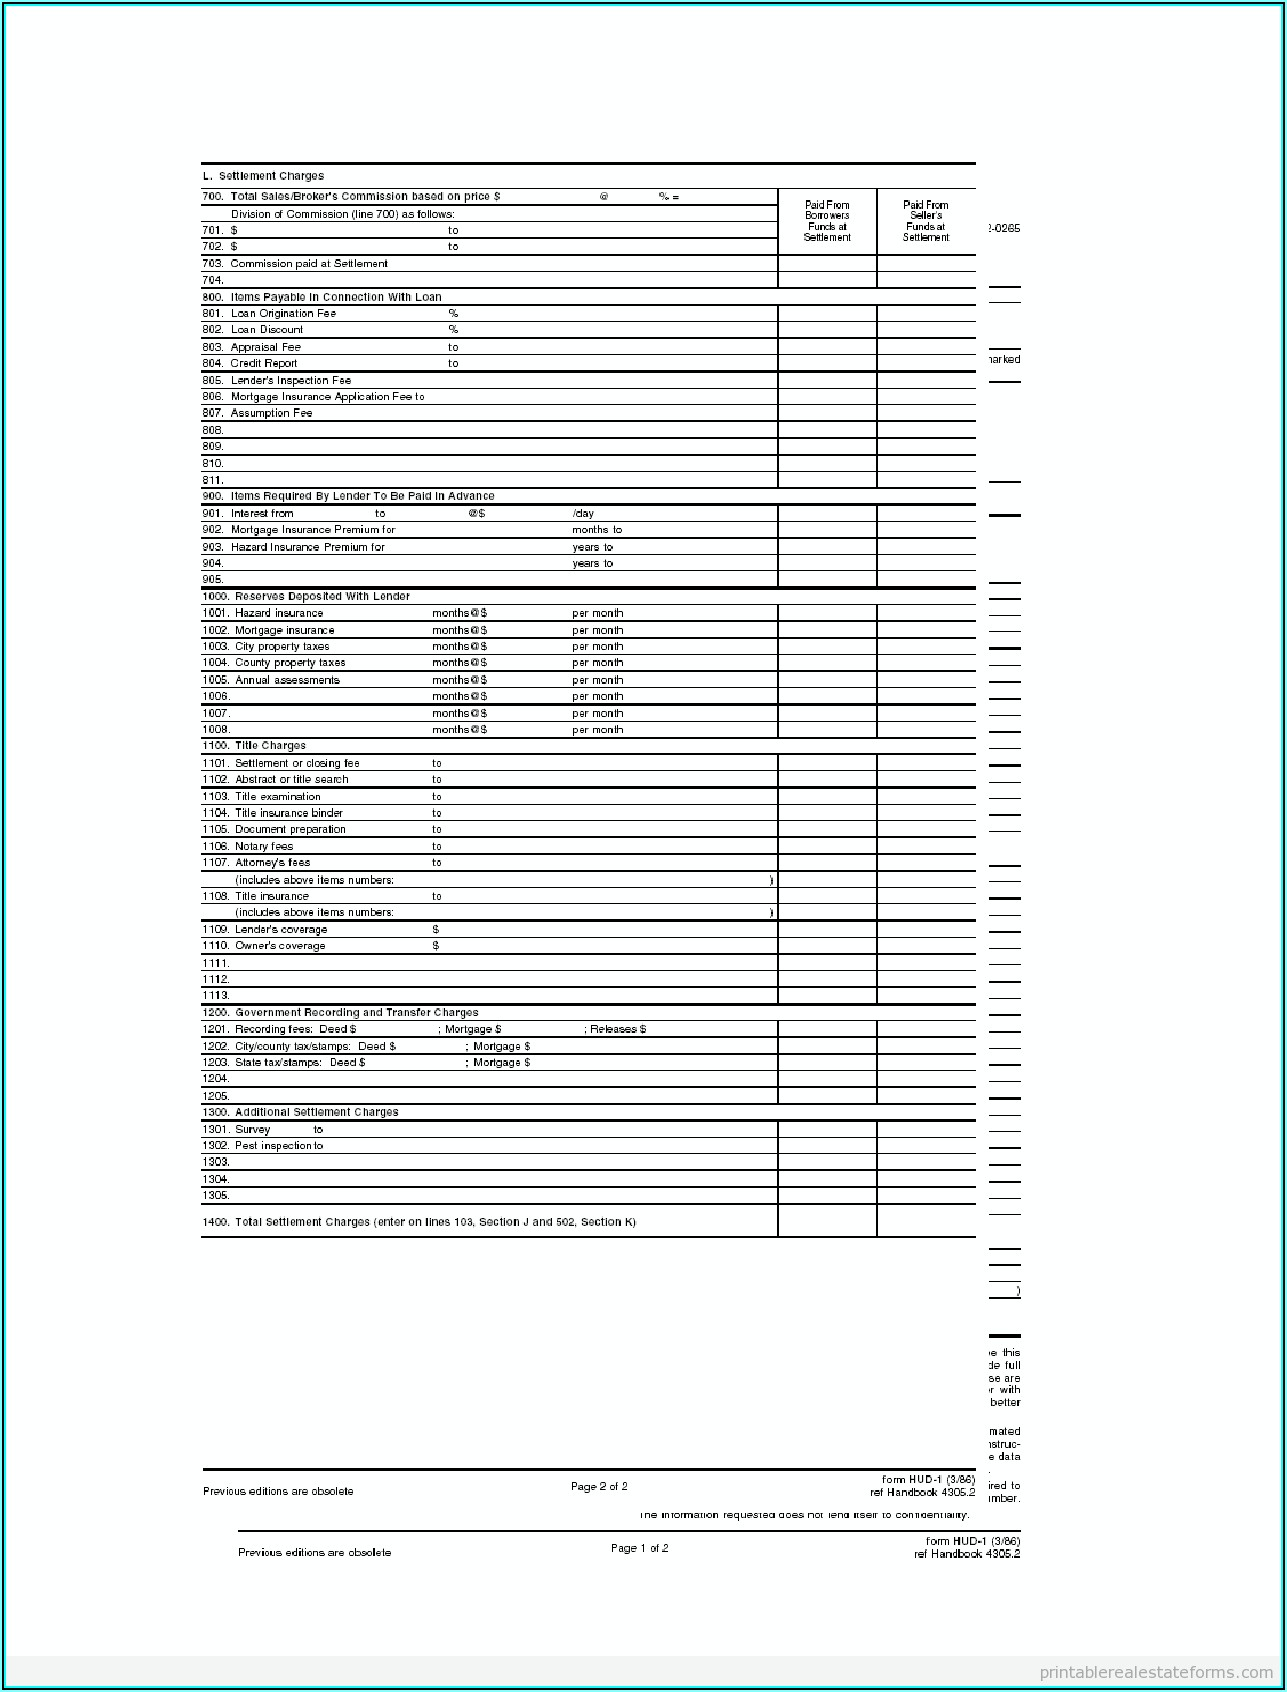 Fillable Hud 1 Settlement Statement Form